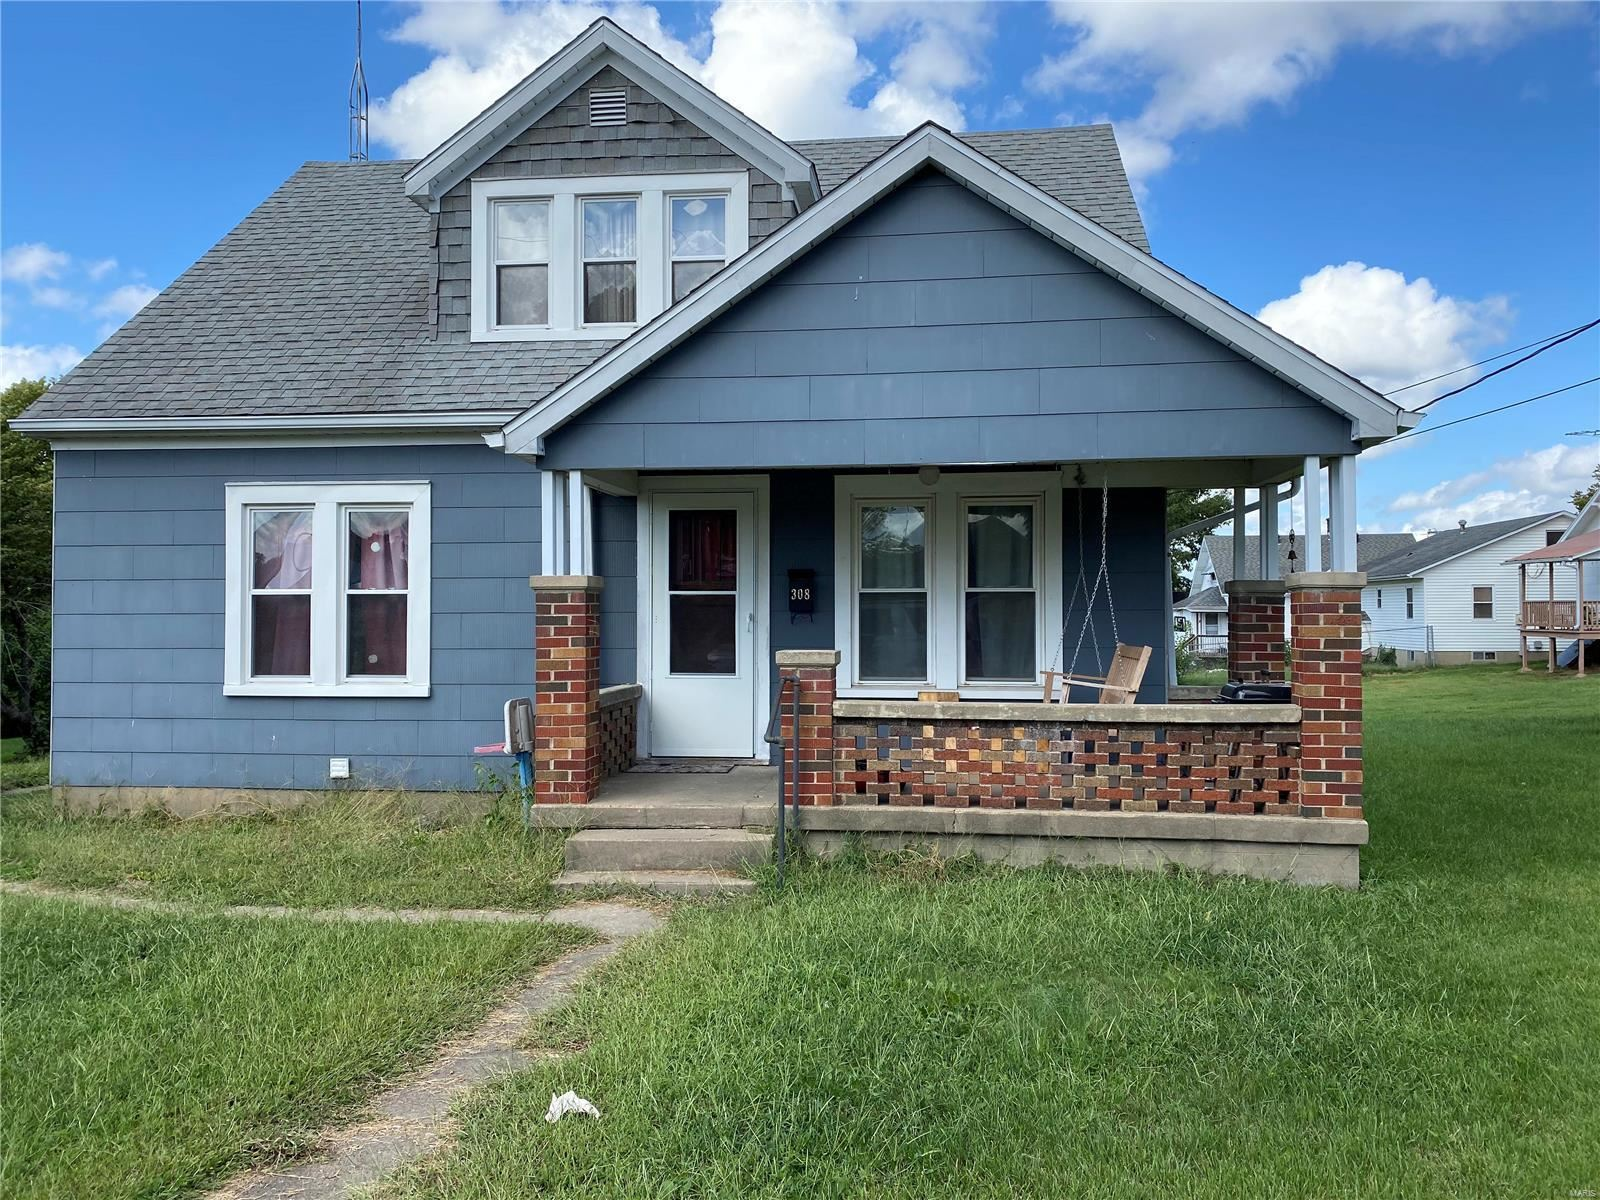 Photo of 308 Grand Avenue, Perryville, MO 63775 (MLS # 21067336)